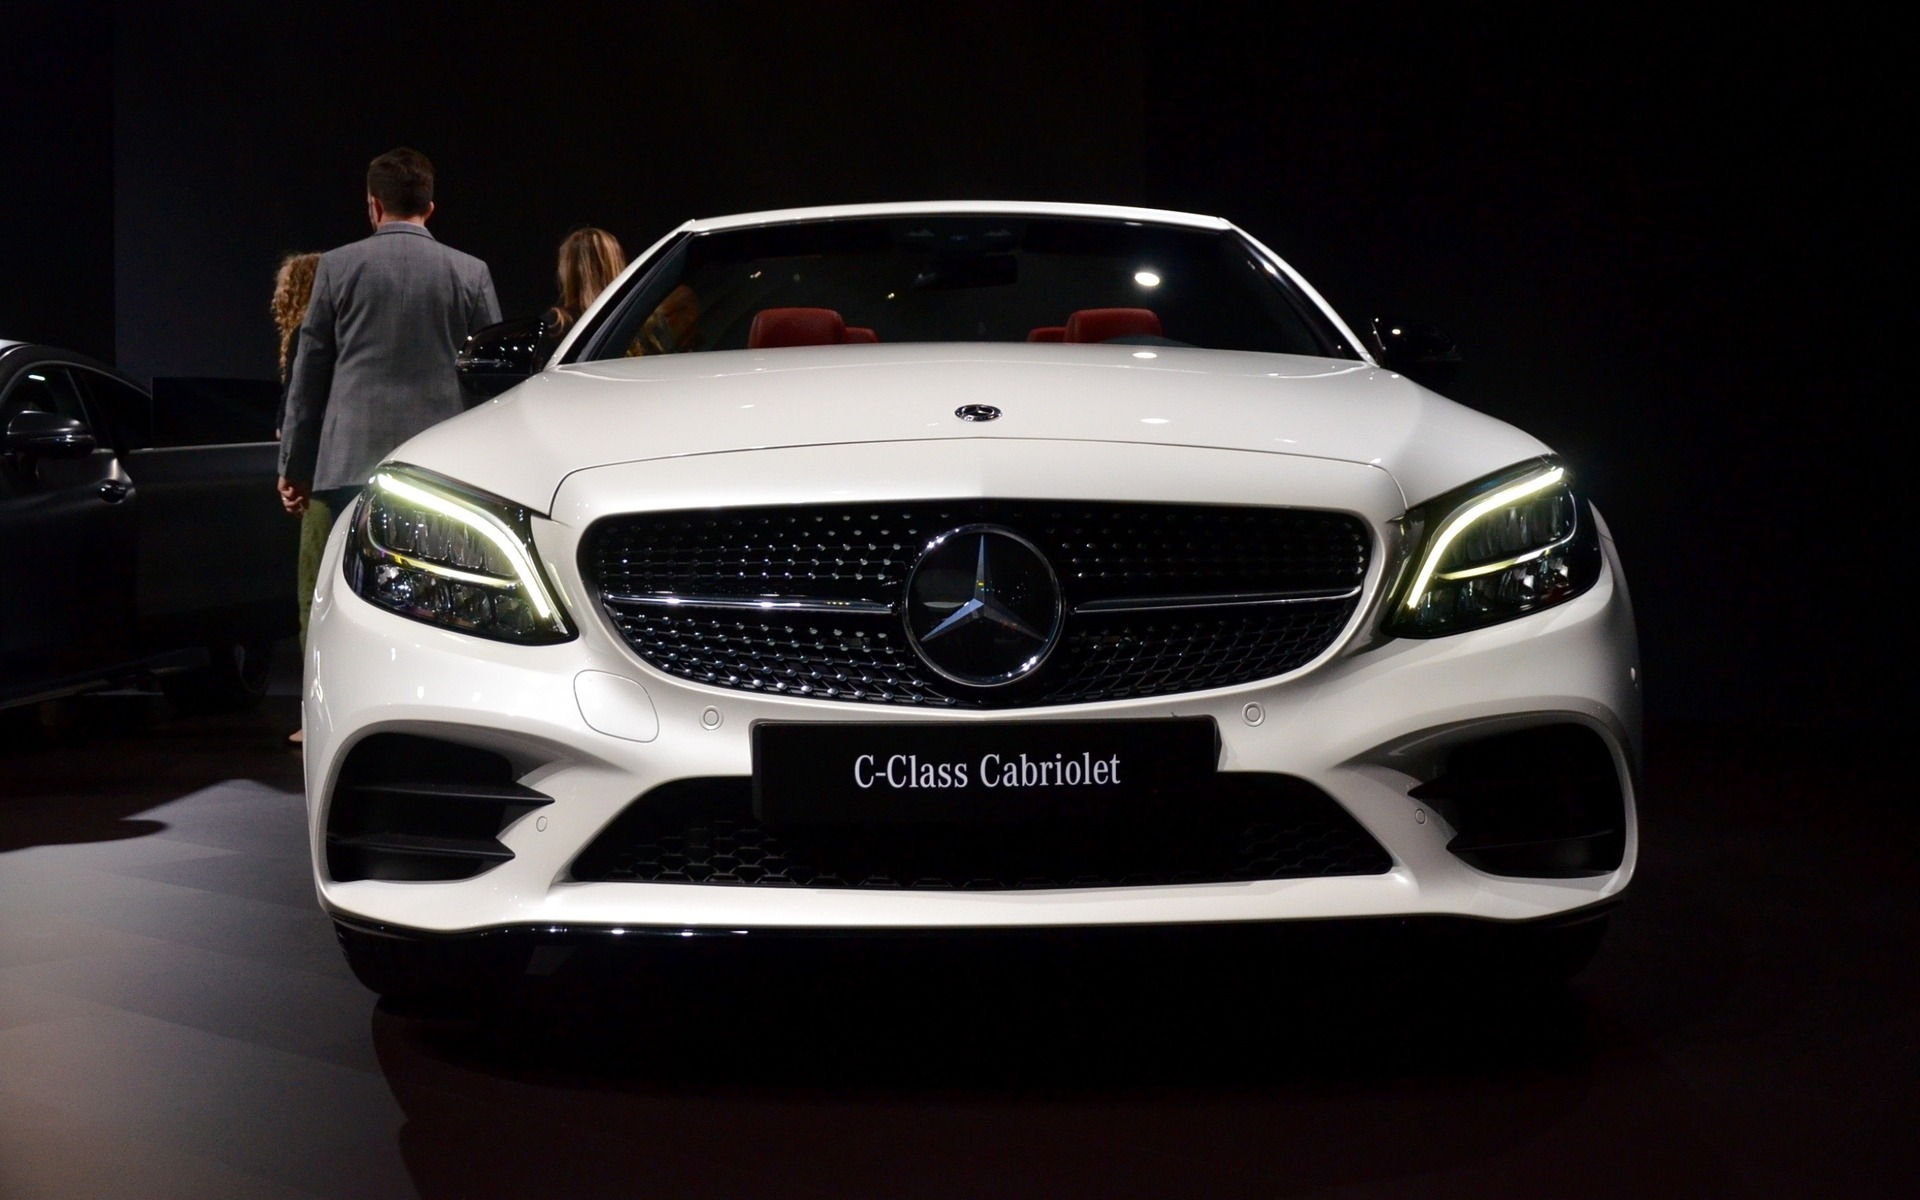 2019 Mercedes Benz C Class Coupe And Cabriolet: World Premiere In New York